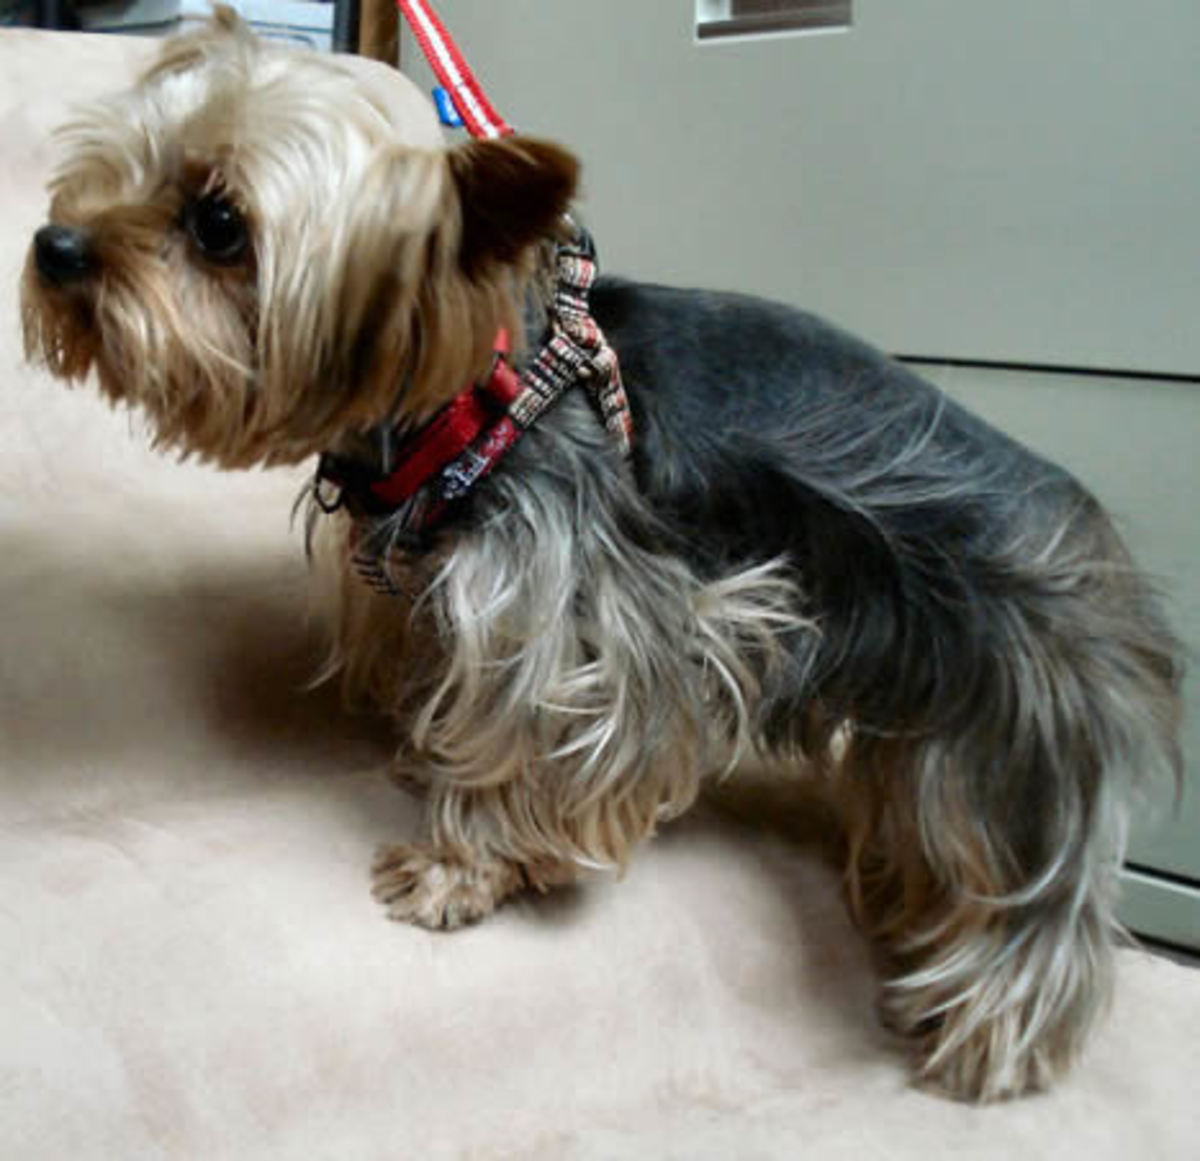 Jack (Yorkshire Terrier) in the Plaid Step-in Harness